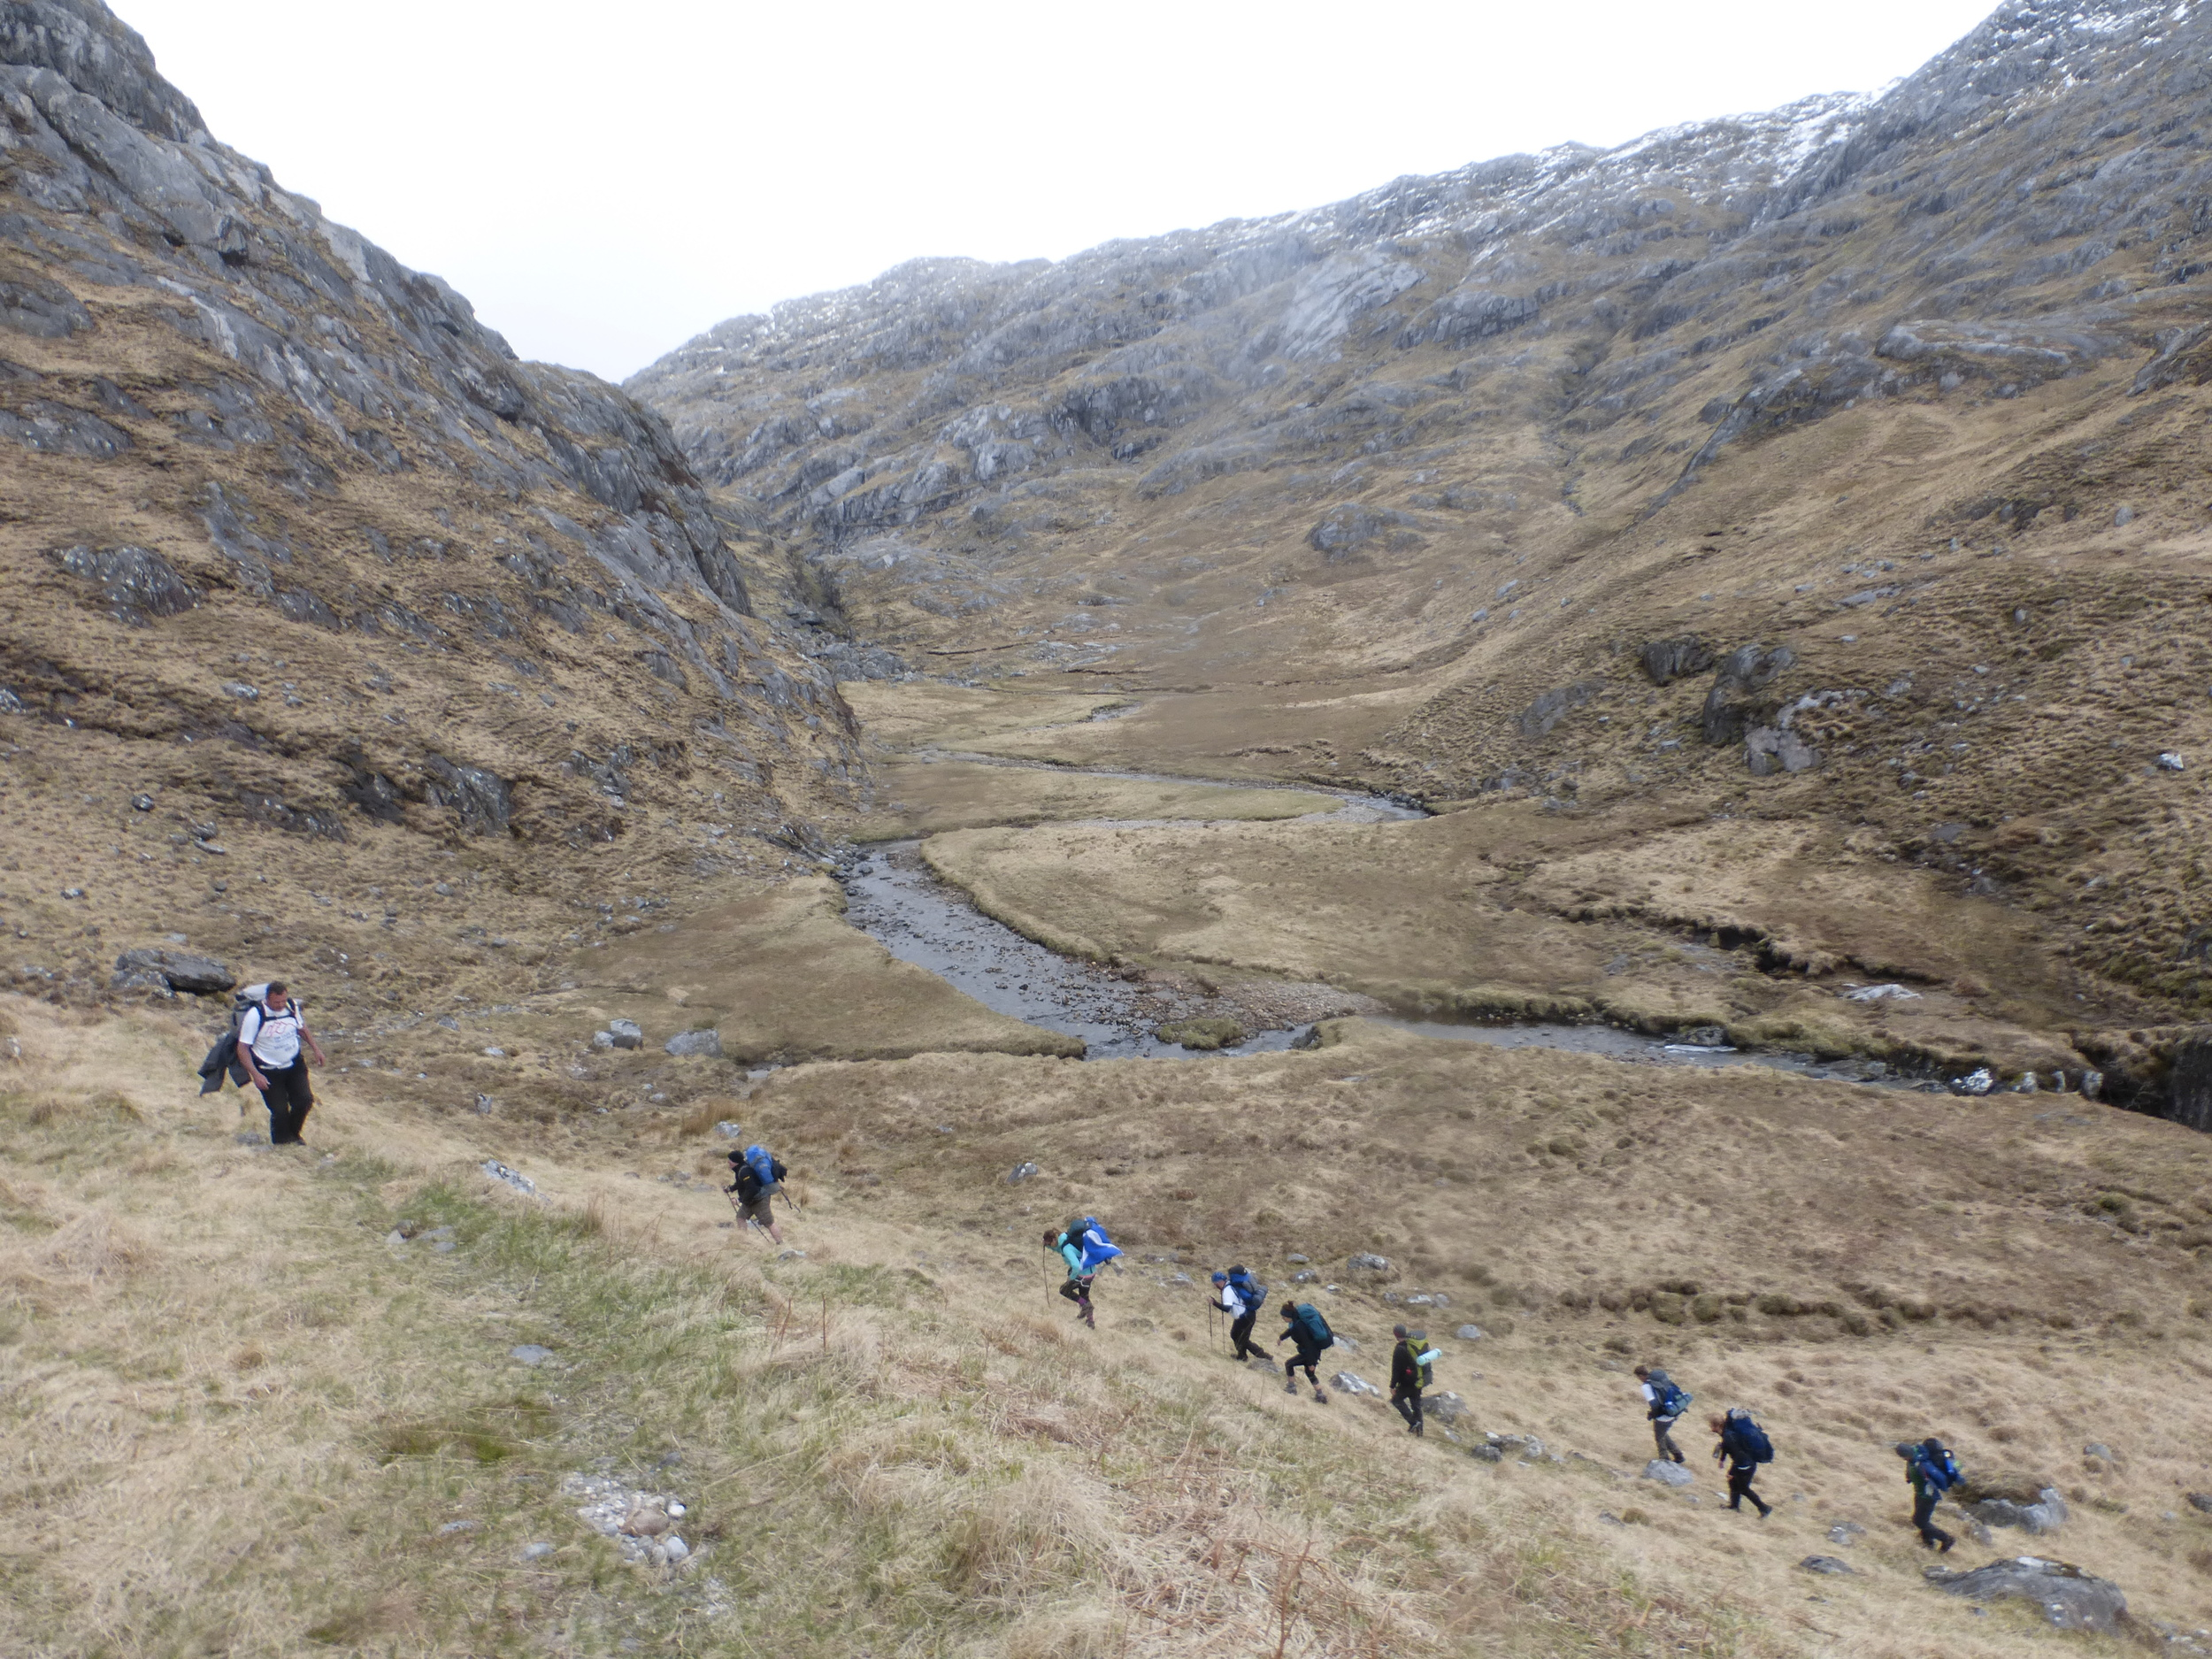 Follow the leader - the team make their way towards the path which descends steeply into Loch Nevis